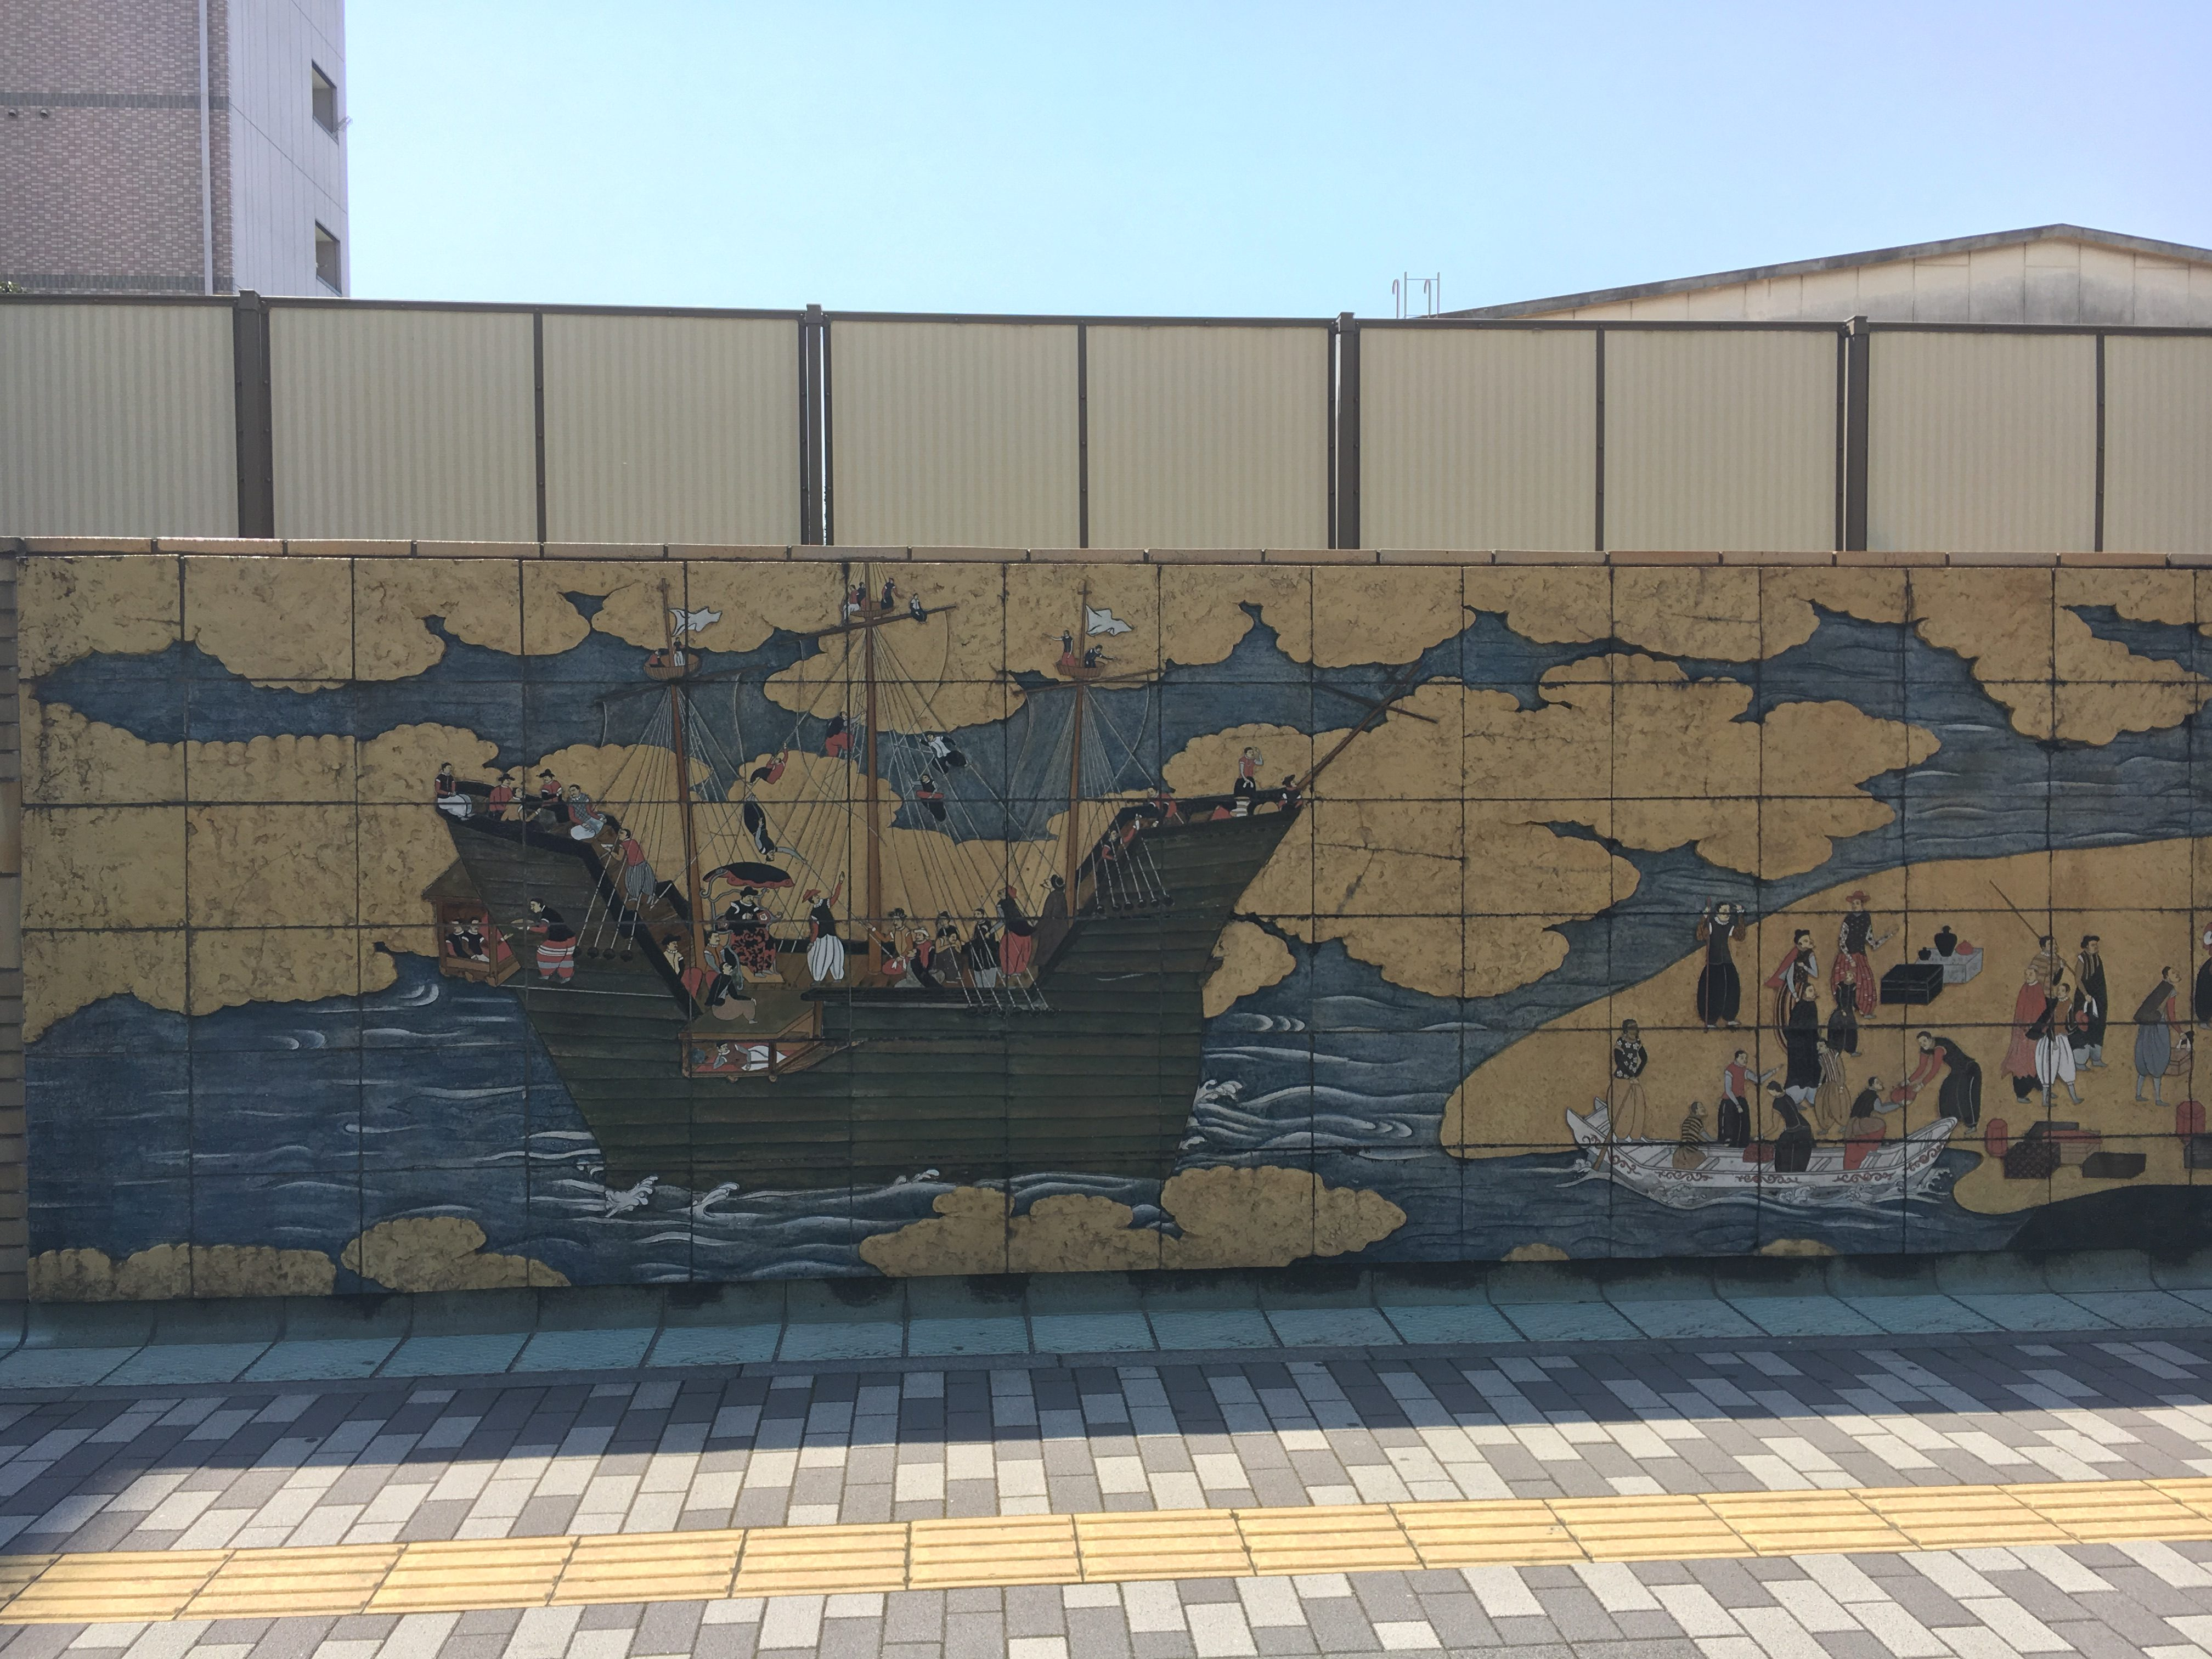 Mural of the Portuguese arriving in sakai port